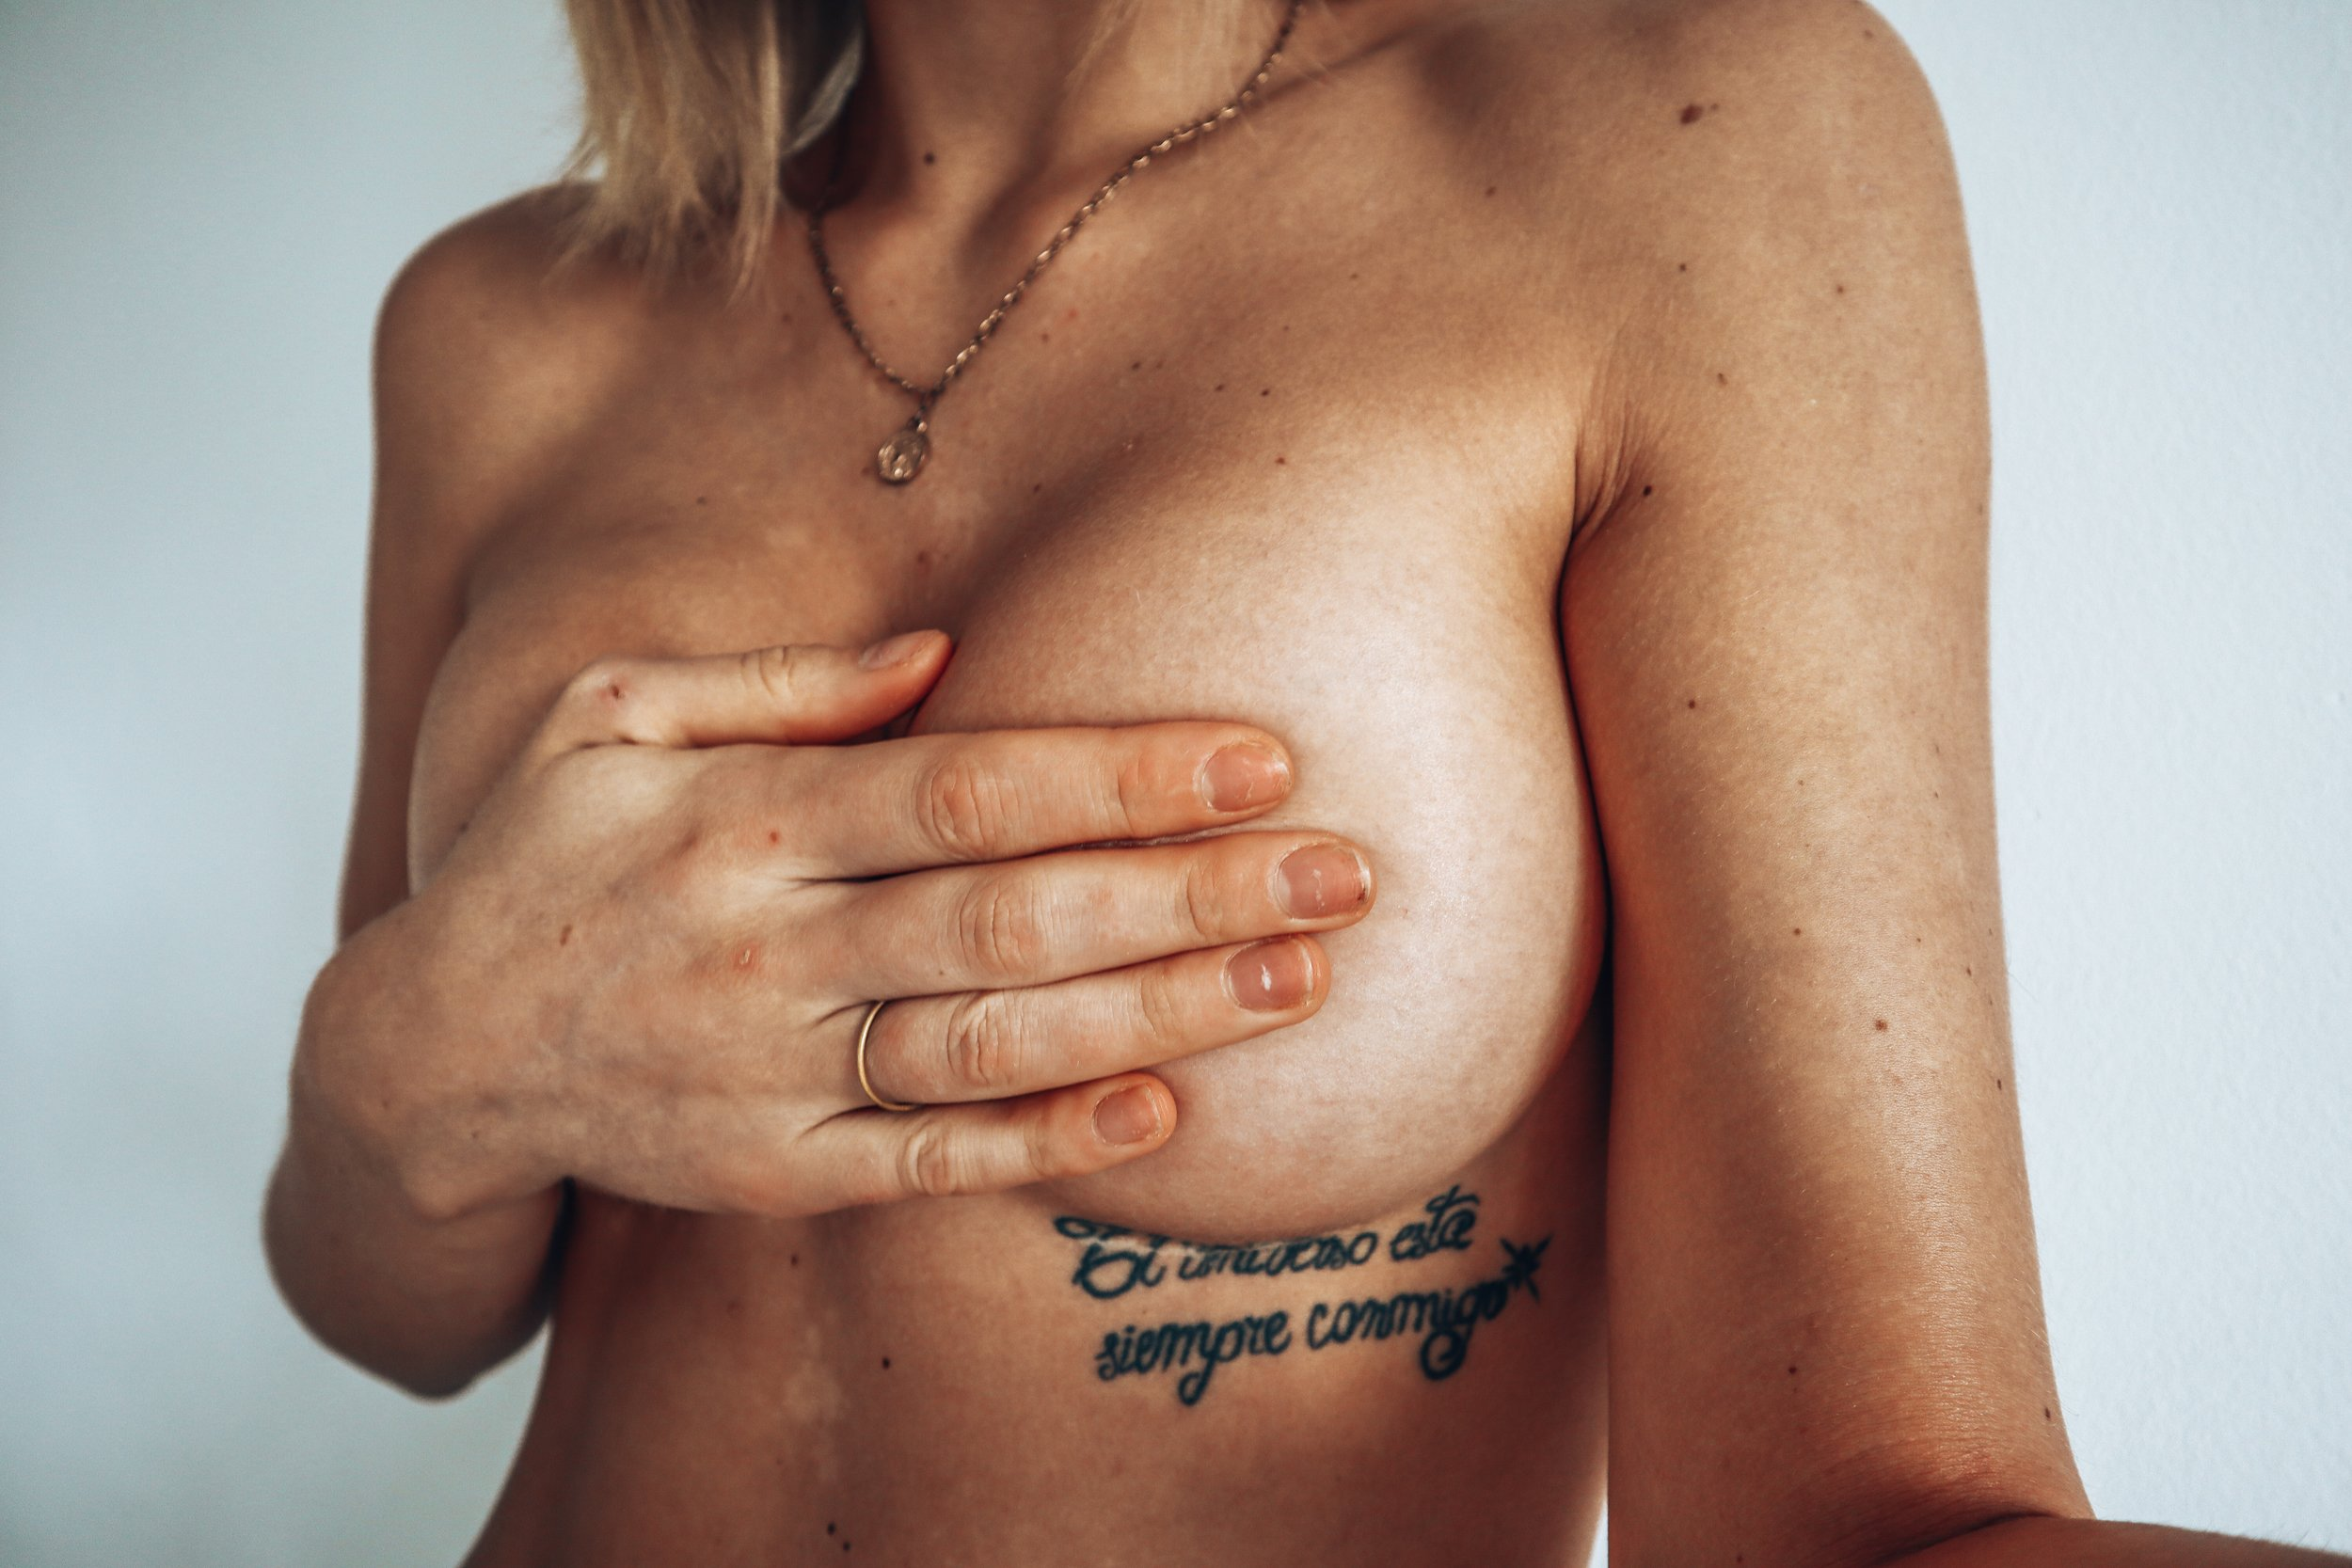 I'VE FOUND A LUMP IN MY RIGHT BREAST -